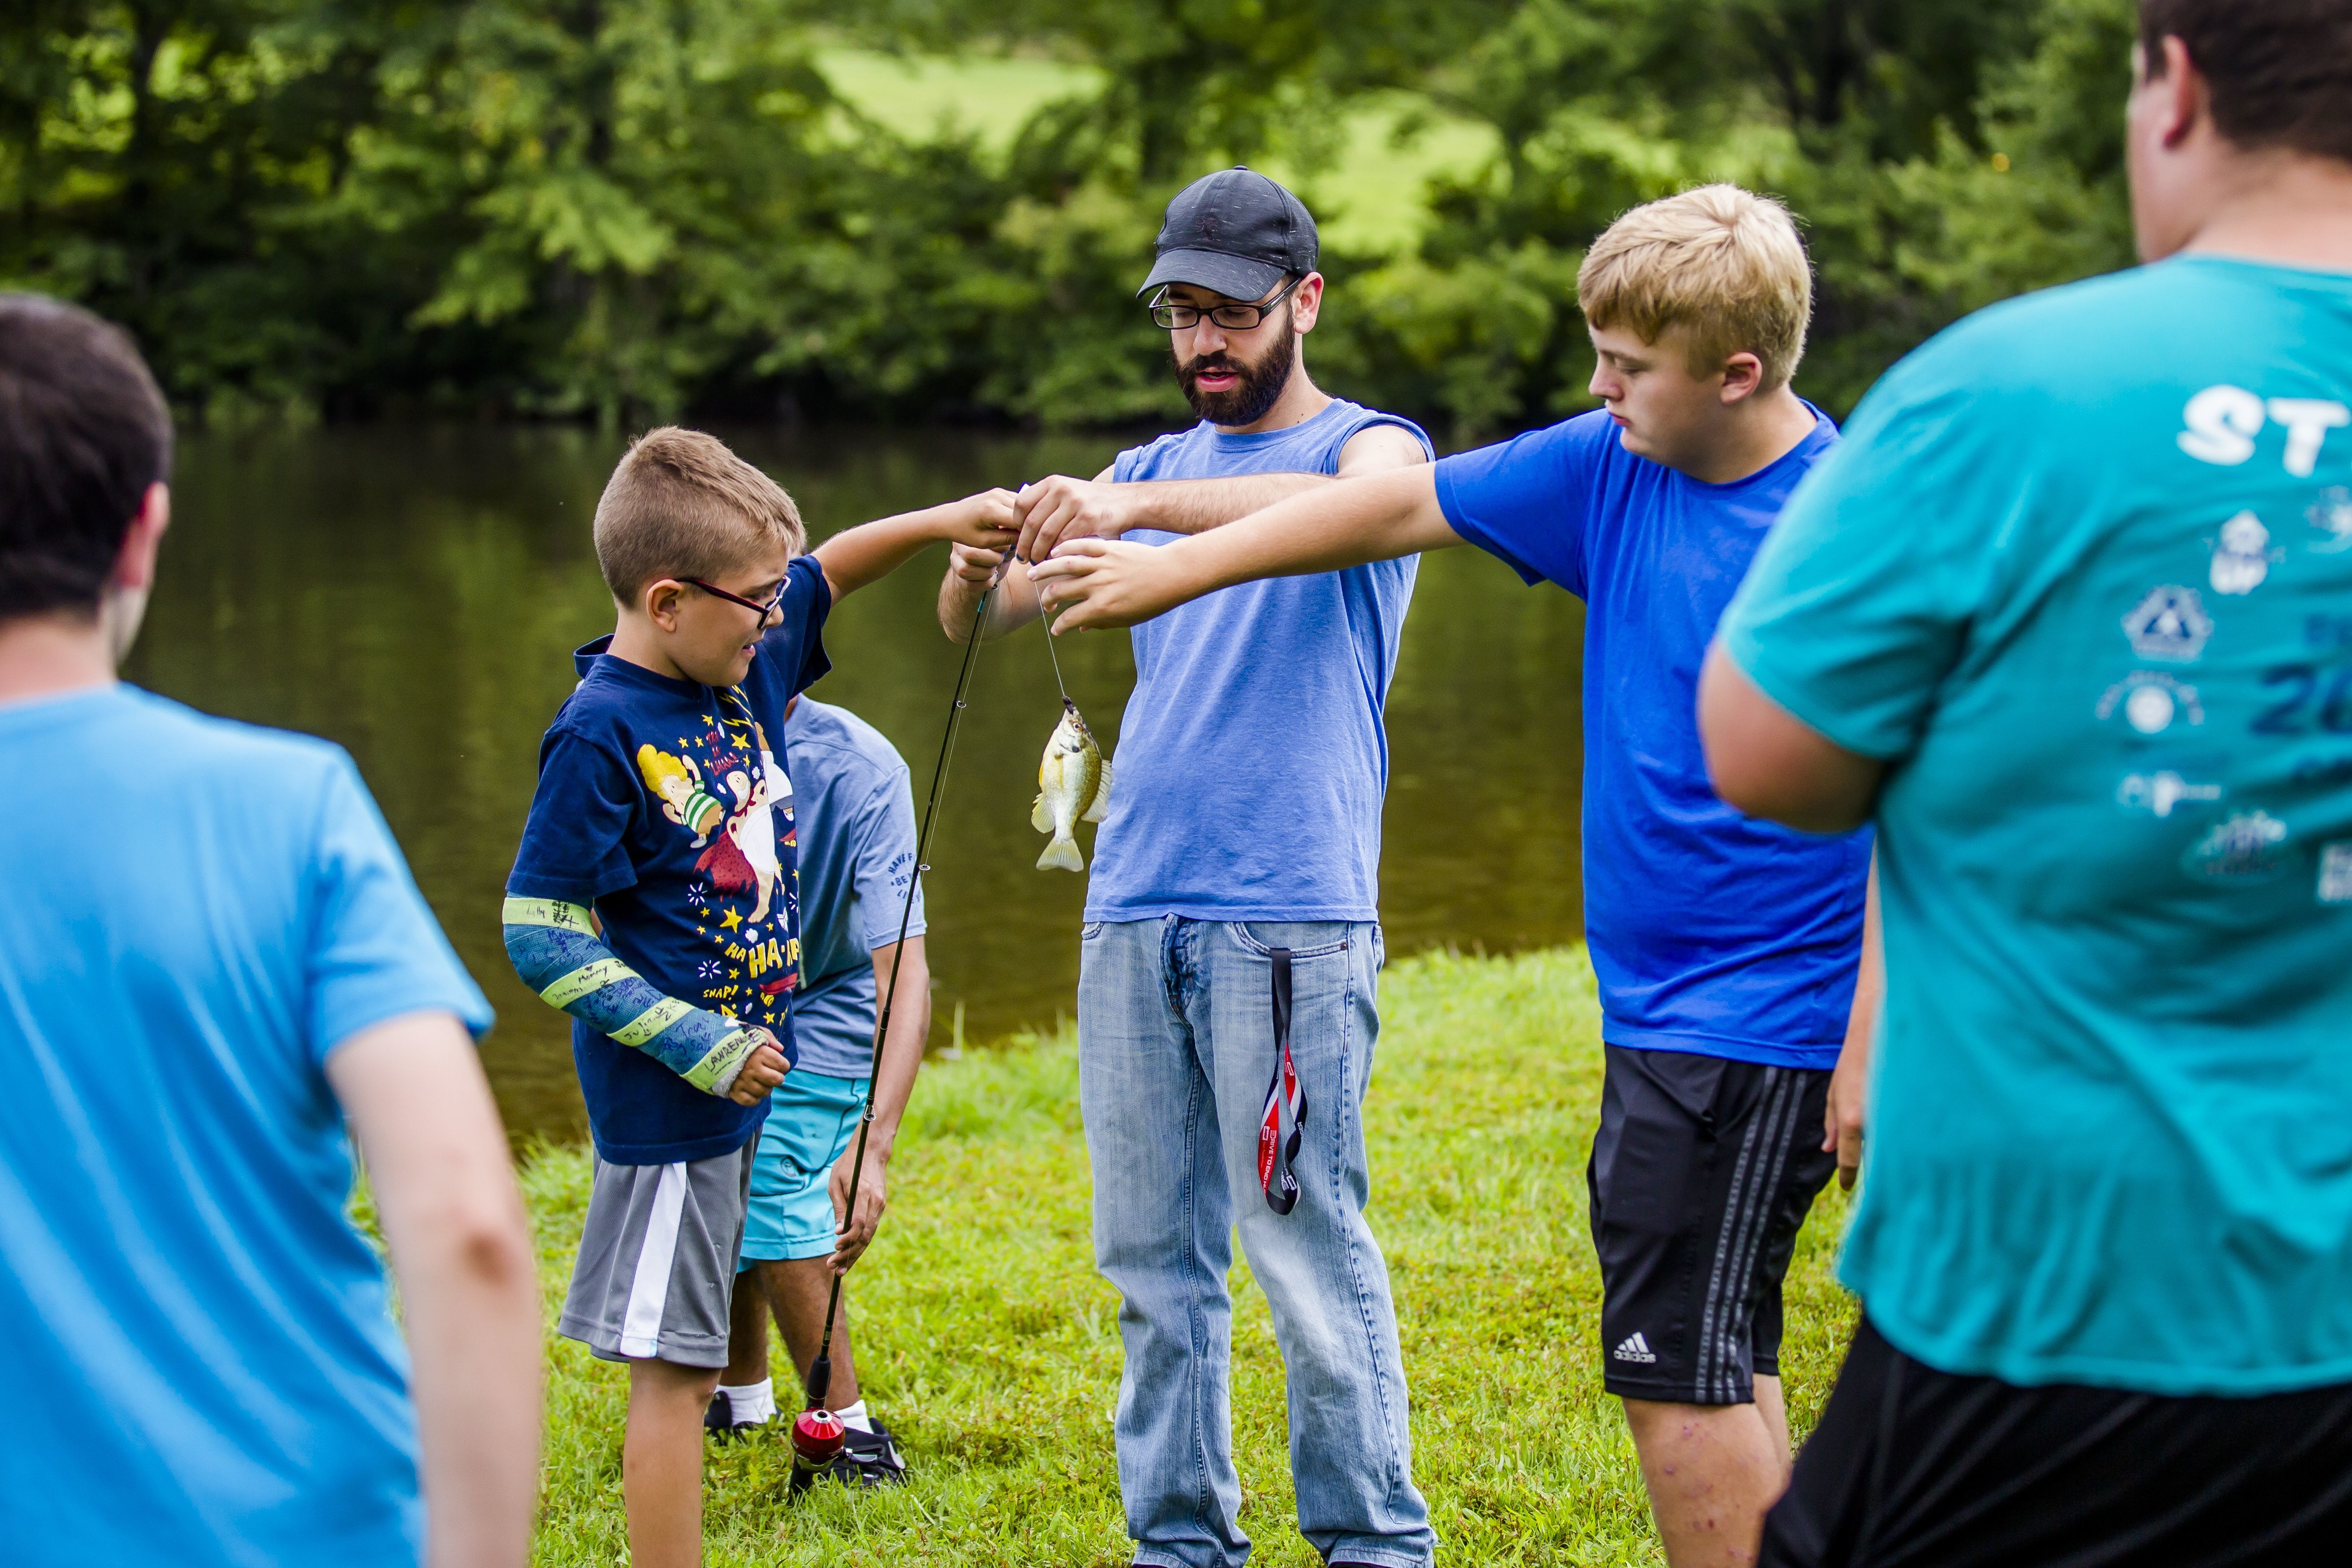 Brainy Camps Newsletter: March 2021